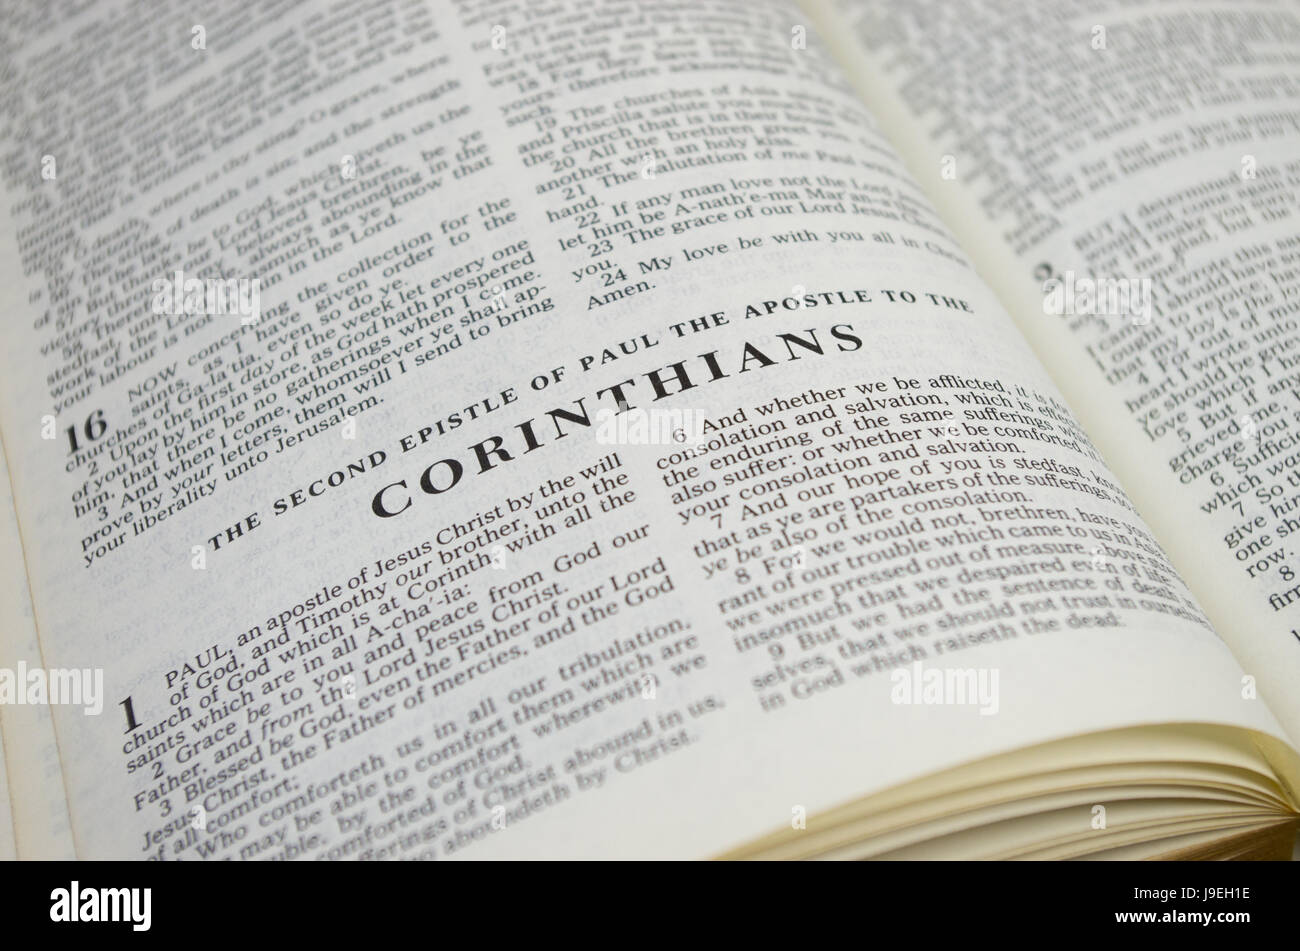 what is the book of corinthians about in the bible